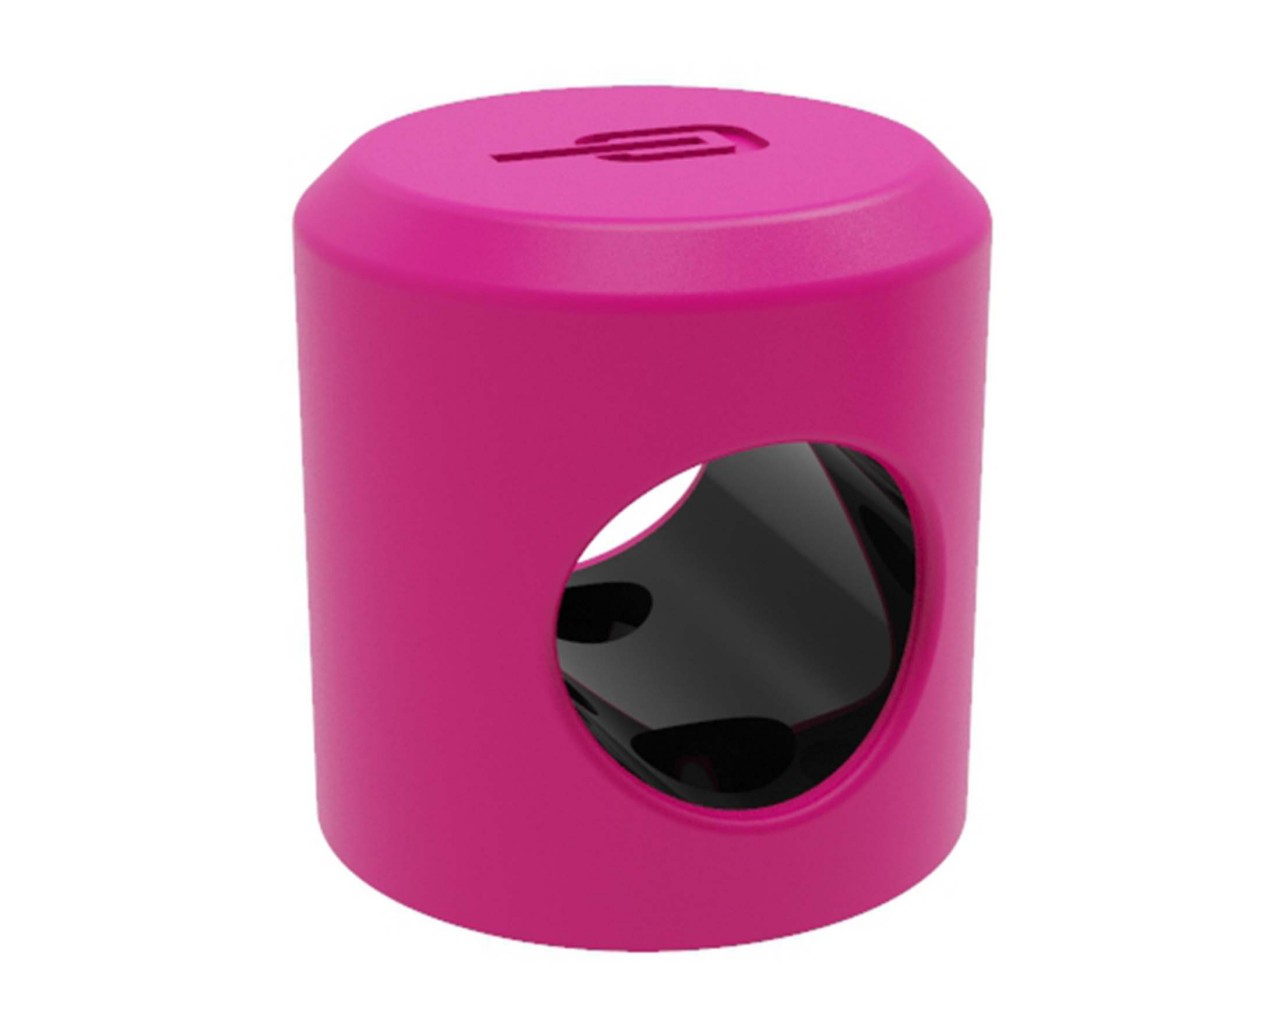 Hiplok ANKR Mini - Wall/Ground anchor for max. security | pink